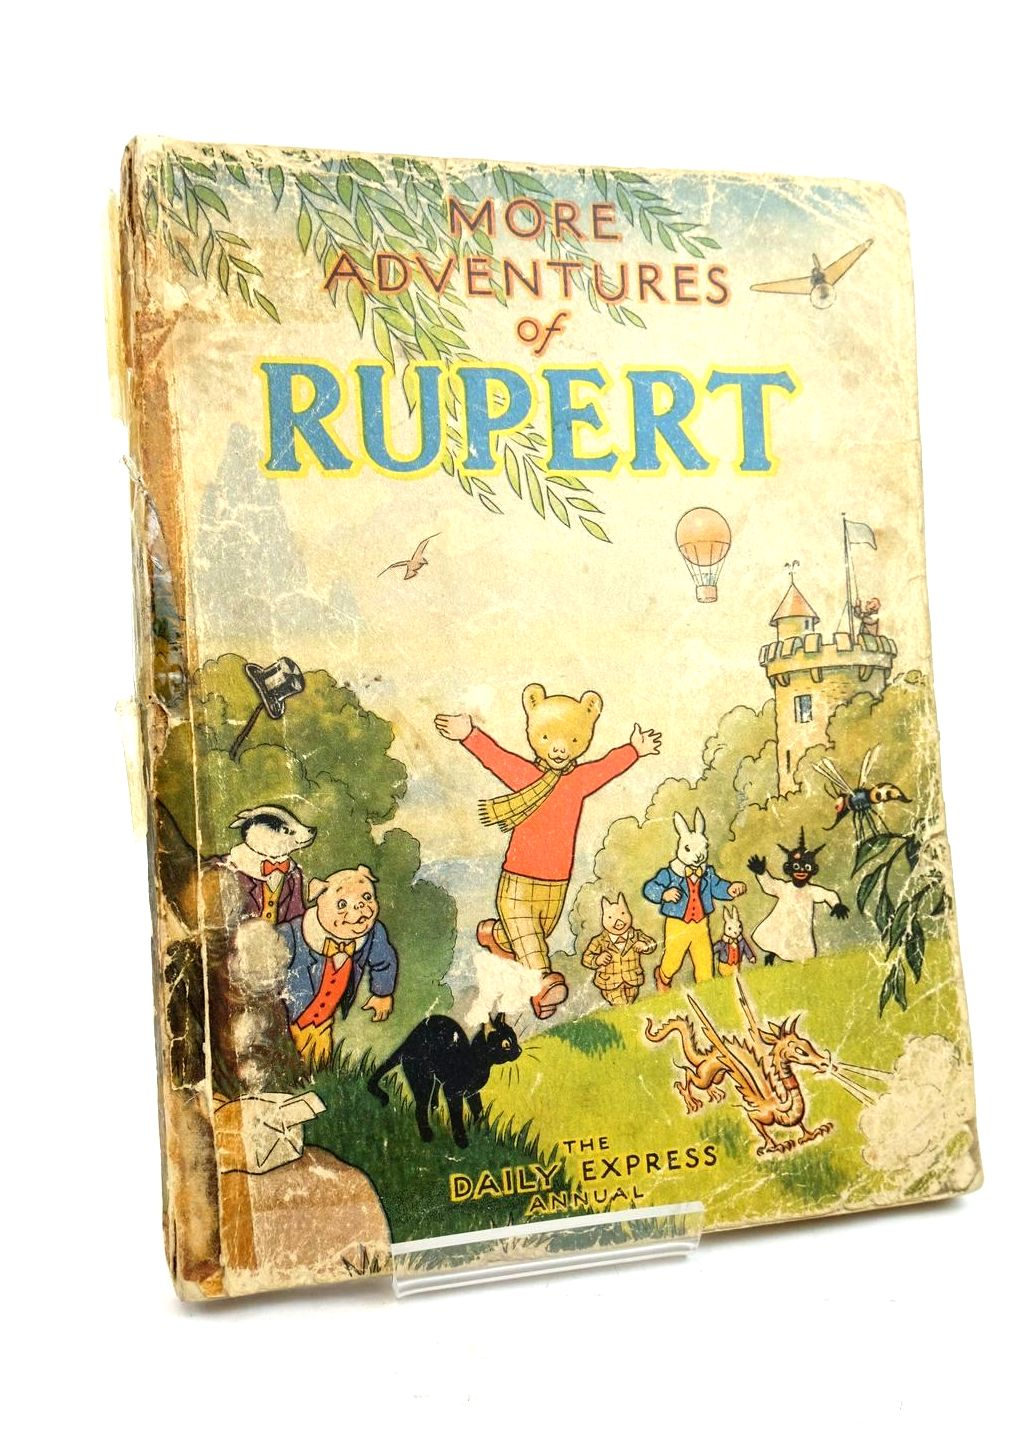 Photo of RUPERT ANNUAL 1947 - MORE ADVENTURES OF RUPERT written by Bestall, Alfred illustrated by Bestall, Alfred published by Daily Express (STOCK CODE: 1320801)  for sale by Stella & Rose's Books